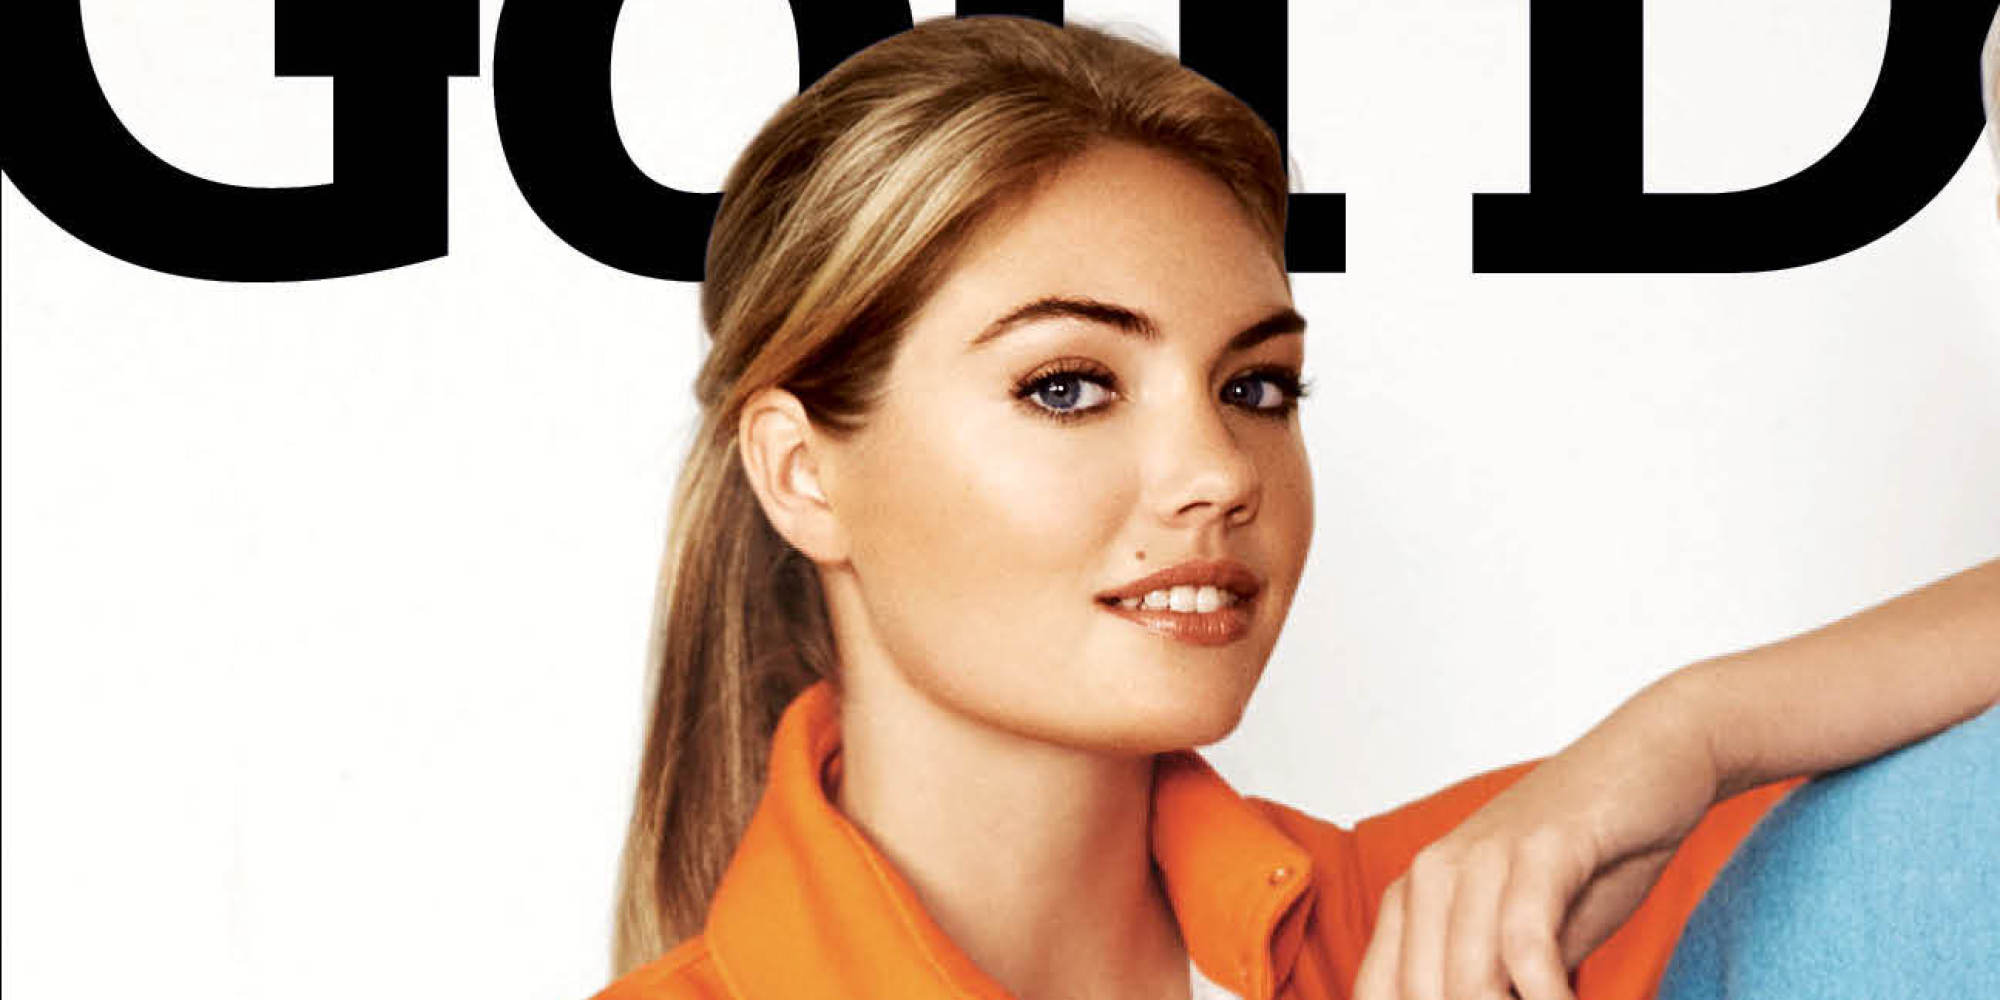 o-KATE-UPTON-GOLF-facebook.jpg